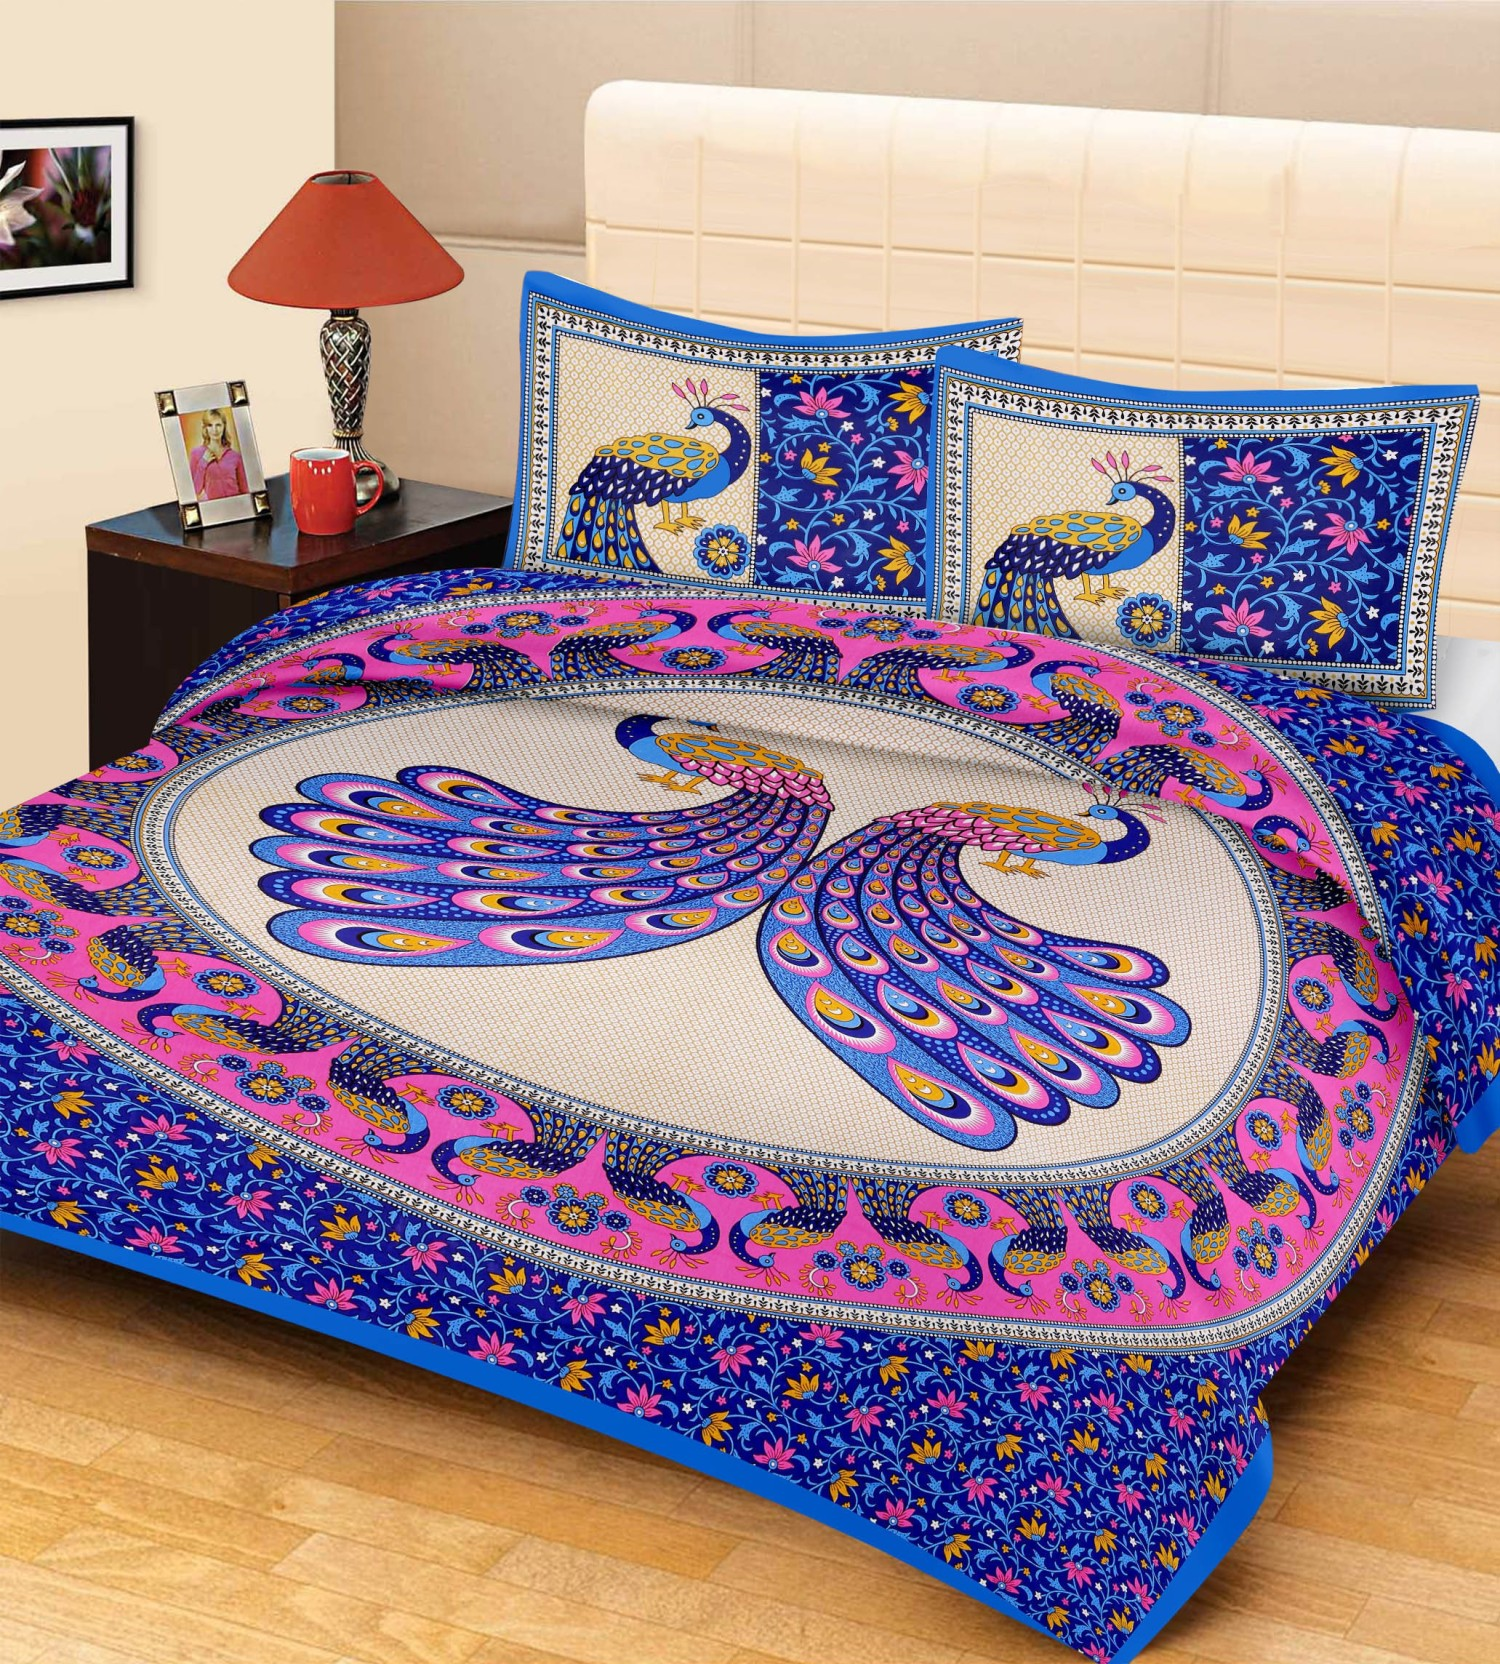 Single Bed Sheet Size In India